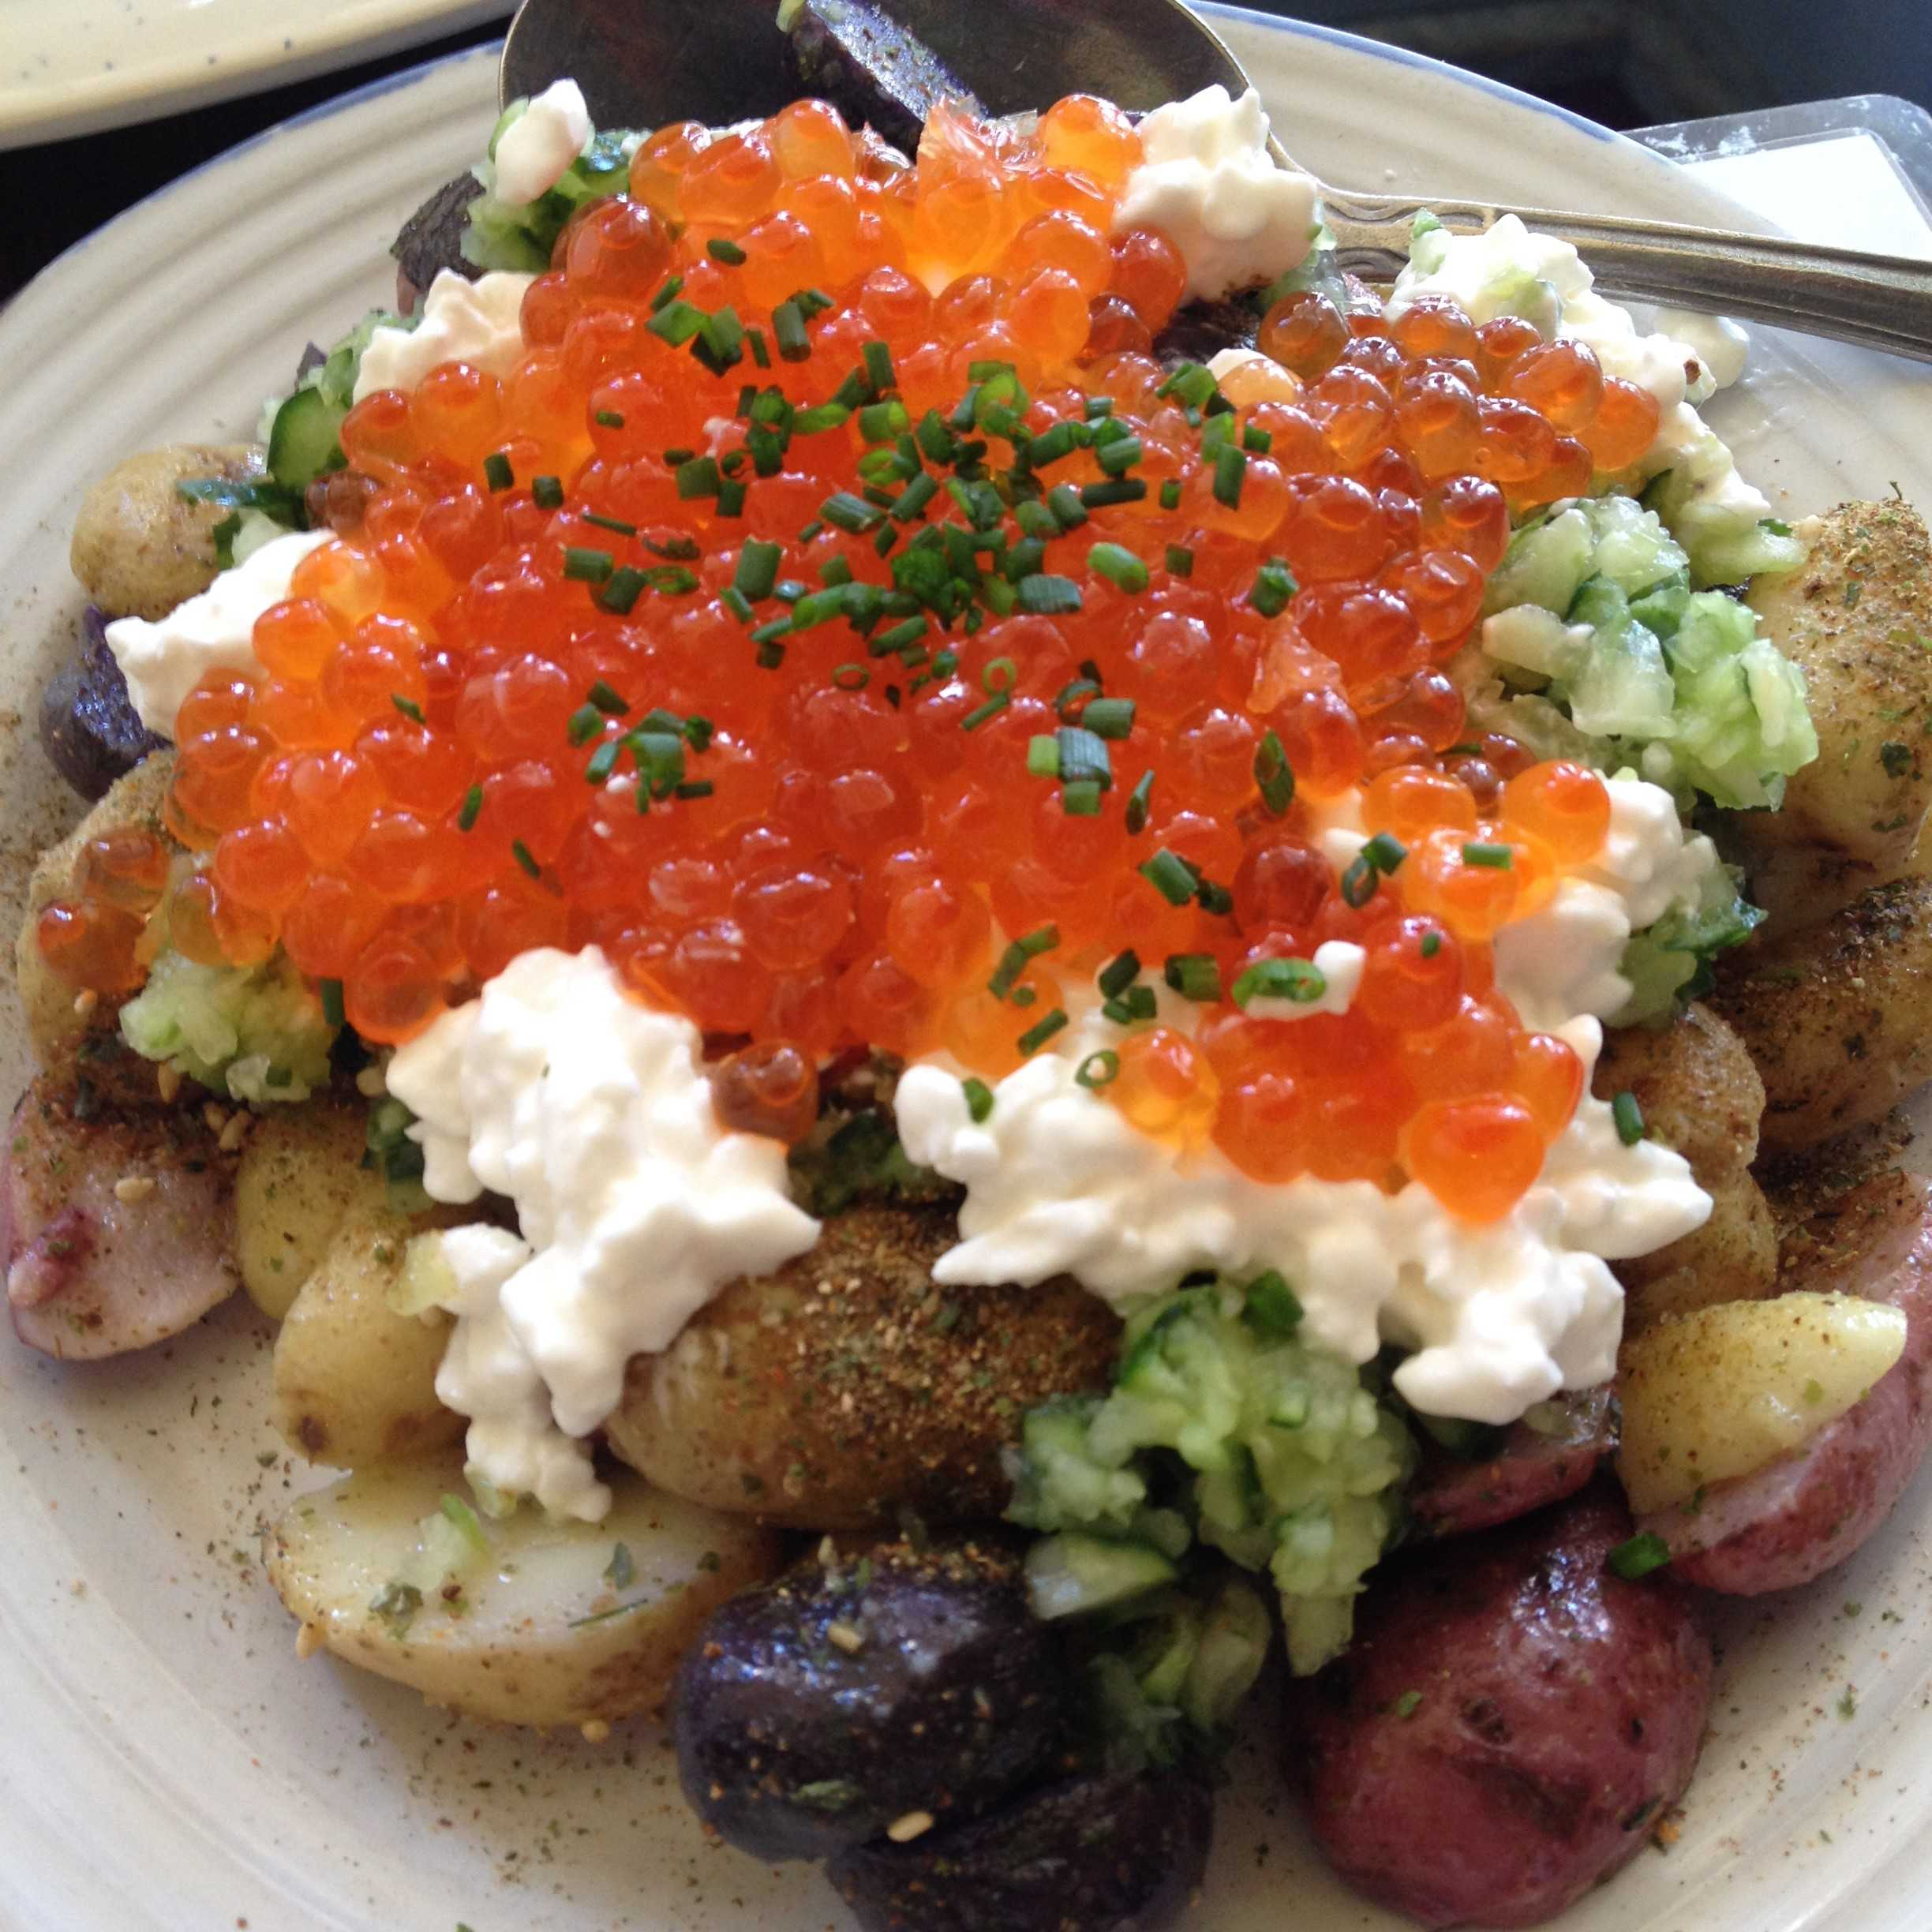 Dishes from Mission Chinese Food in San Francisco. Salmon roe on a bed of fried potatoes. Photo by Kaila Chan '14